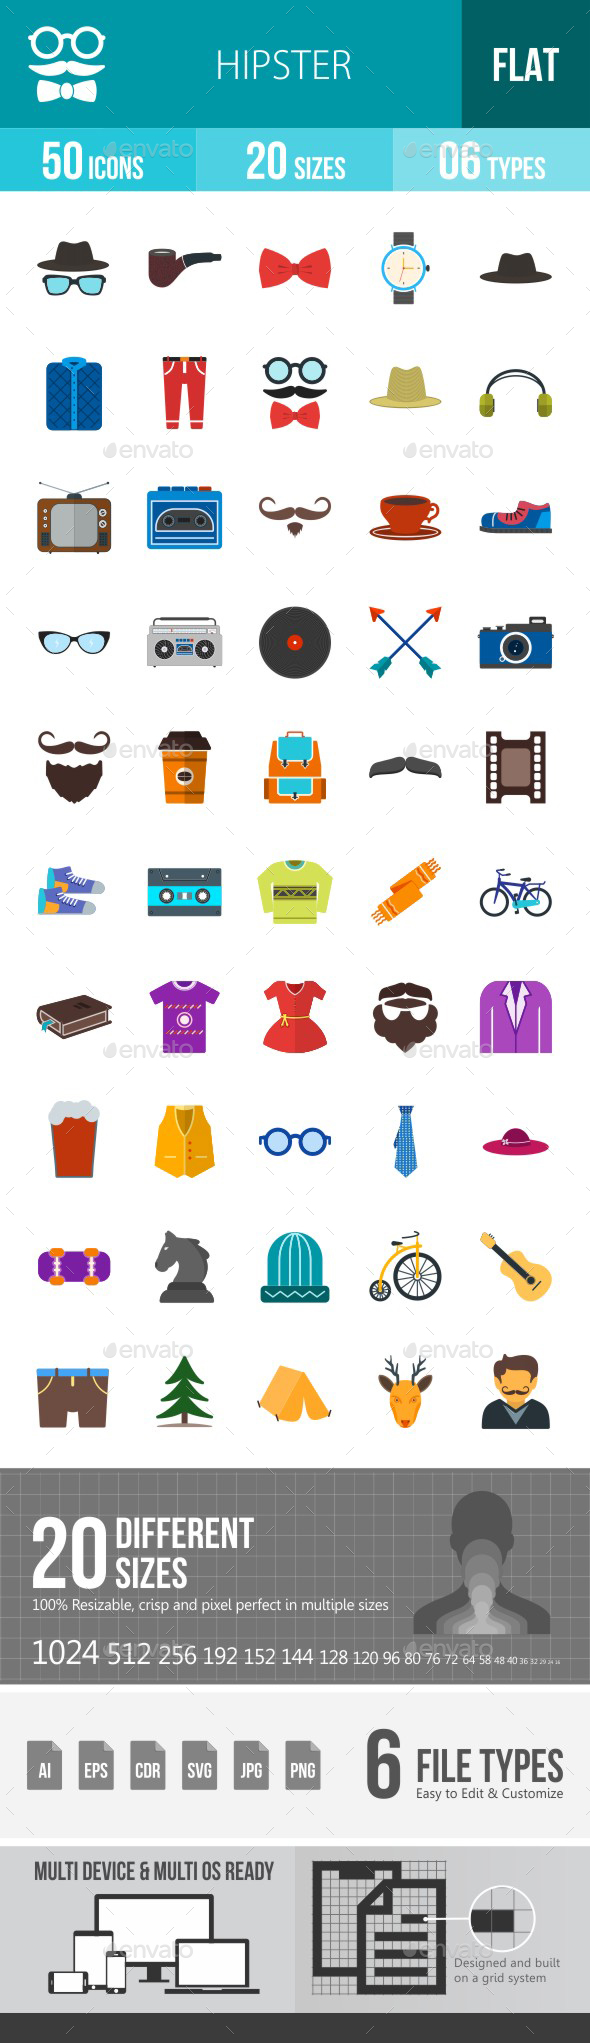 Hipster Flat Multicolor Icons - Icons